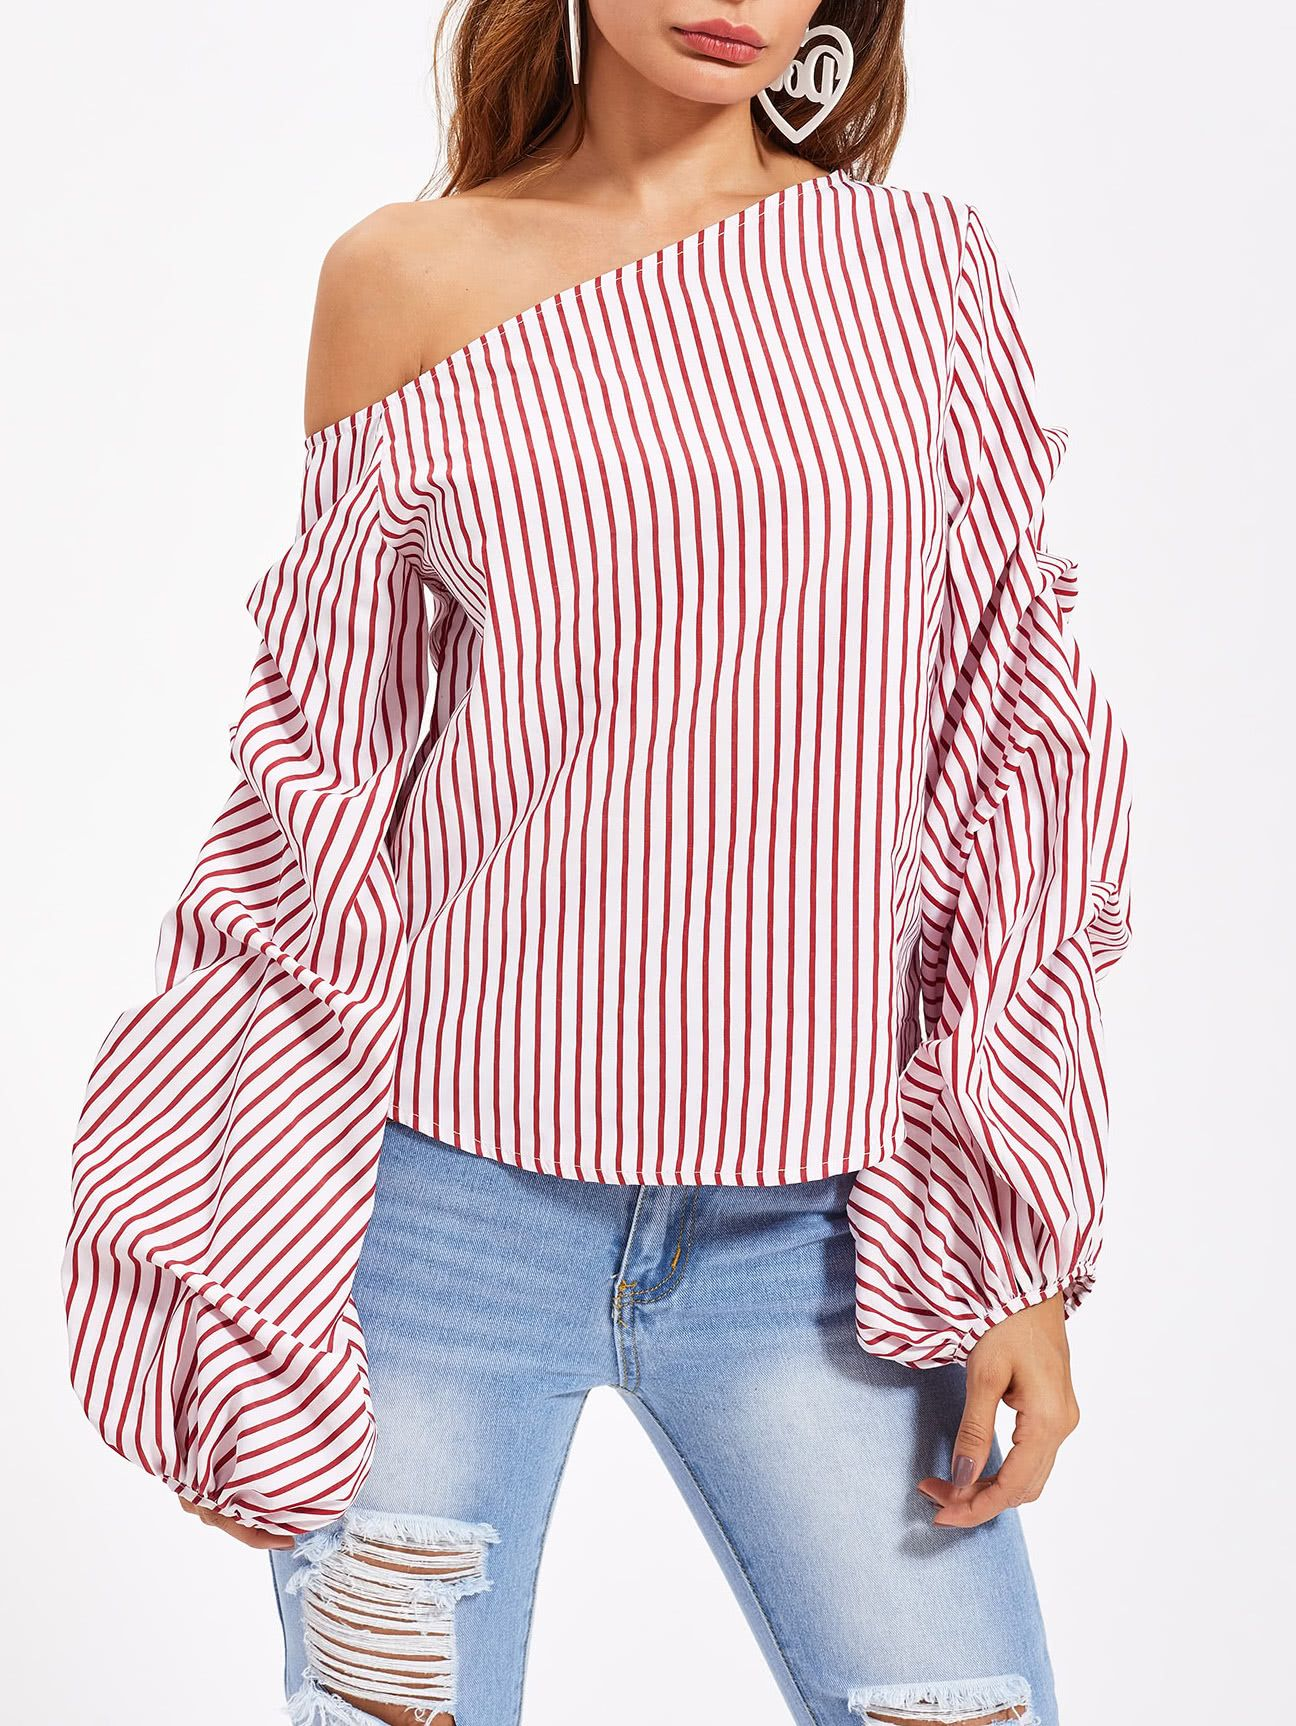 eb081e7c8d0d1 Shop Asymmetric Shoulder Gathered Lantern Sleeve Top online. SheIn offers  Asymmetric Shoulder Gathered Lantern Sleeve Top   more to fit your  fashionable ...